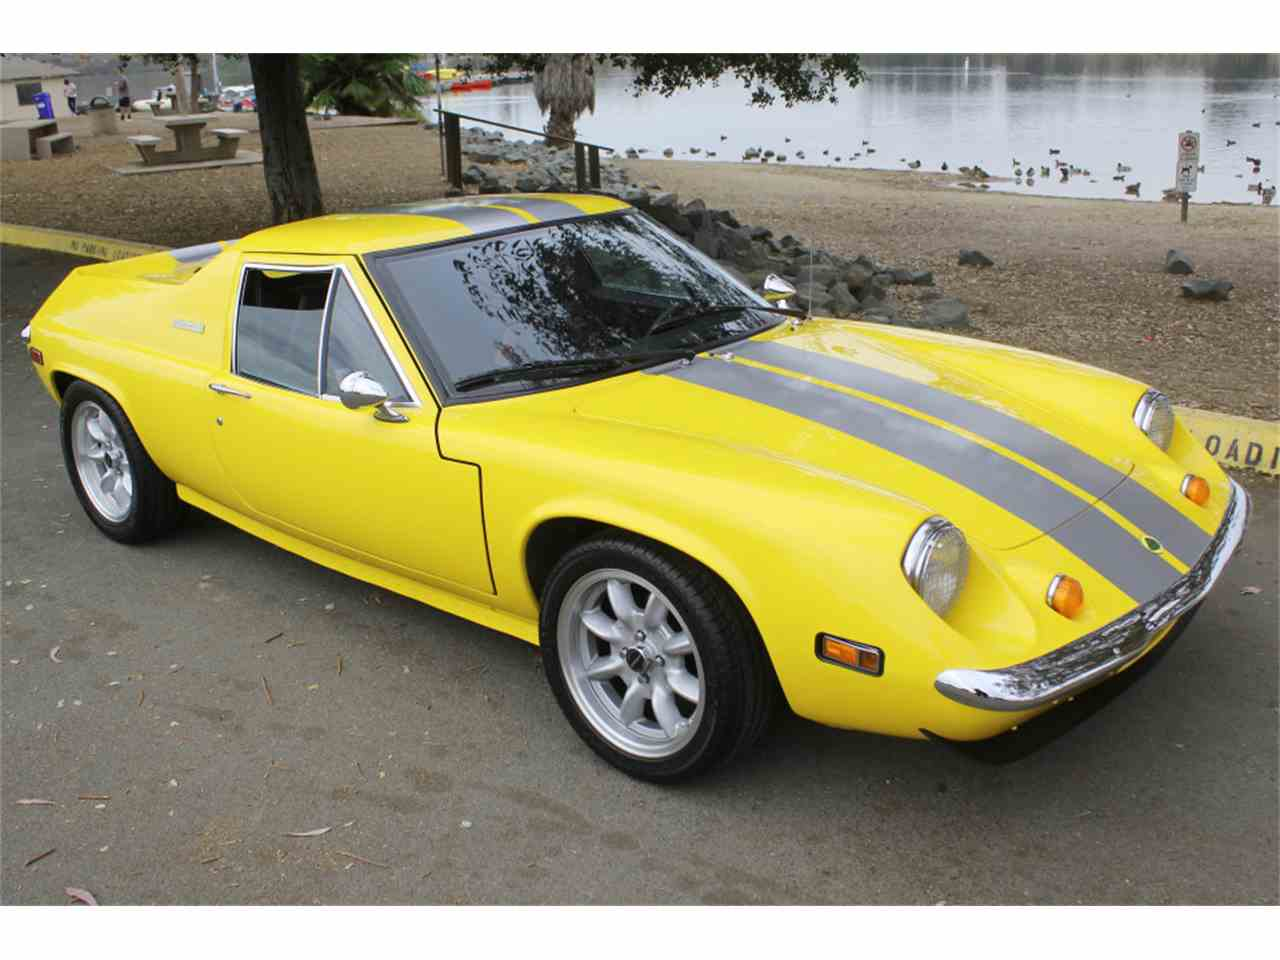 https://ccmarketplace.azureedge.net/cc-temp/listing/105/7263/10728139-1973-lotus-europa-std-c.jpg